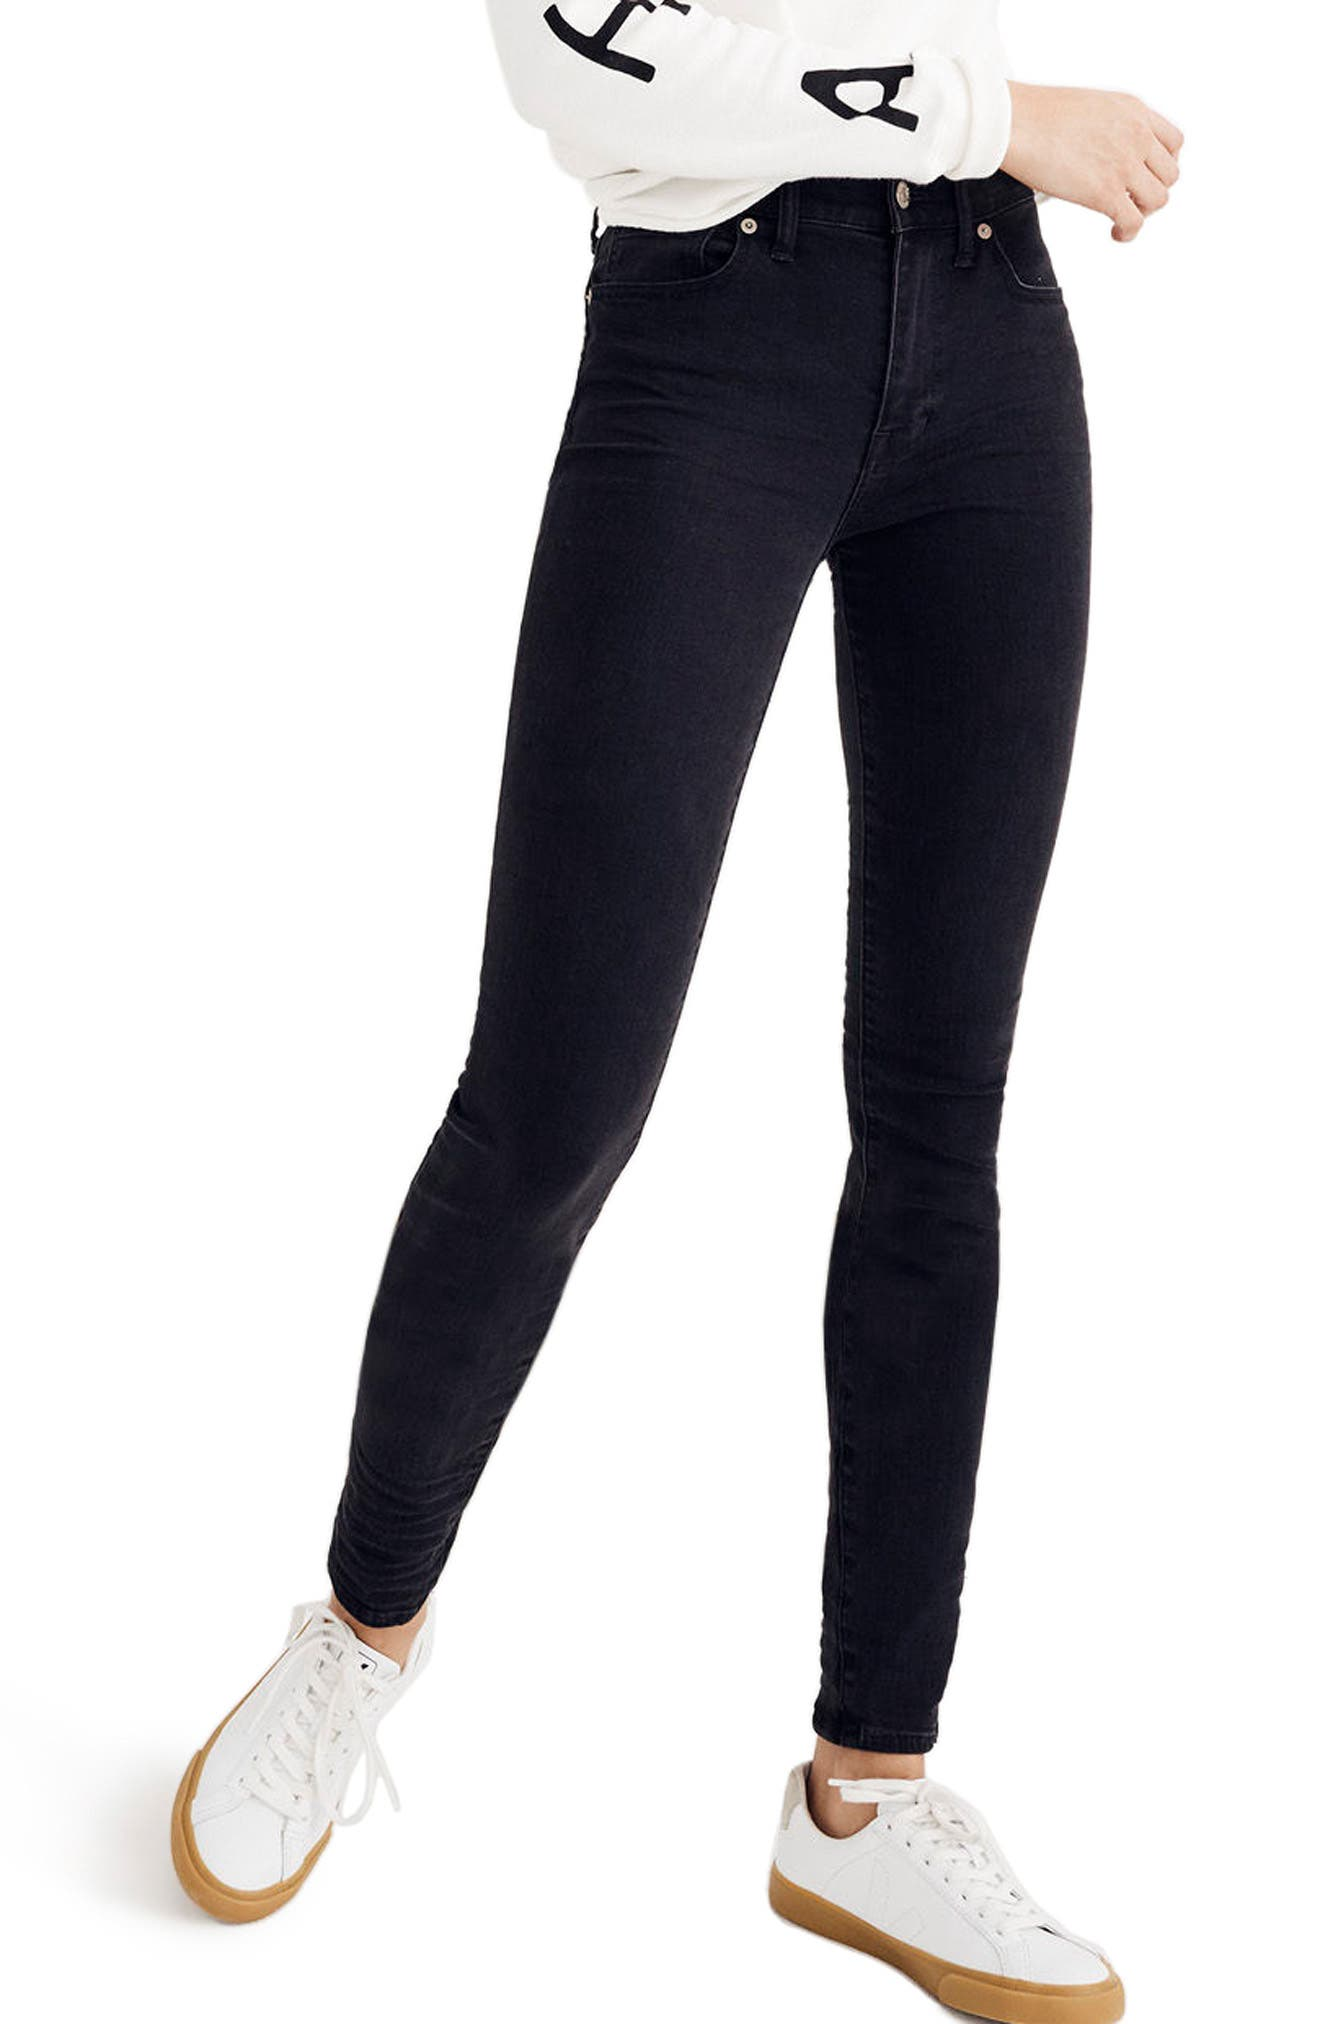 9-Inch High-Rise Skinny Jeans,                             Main thumbnail 1, color,                             Lunar